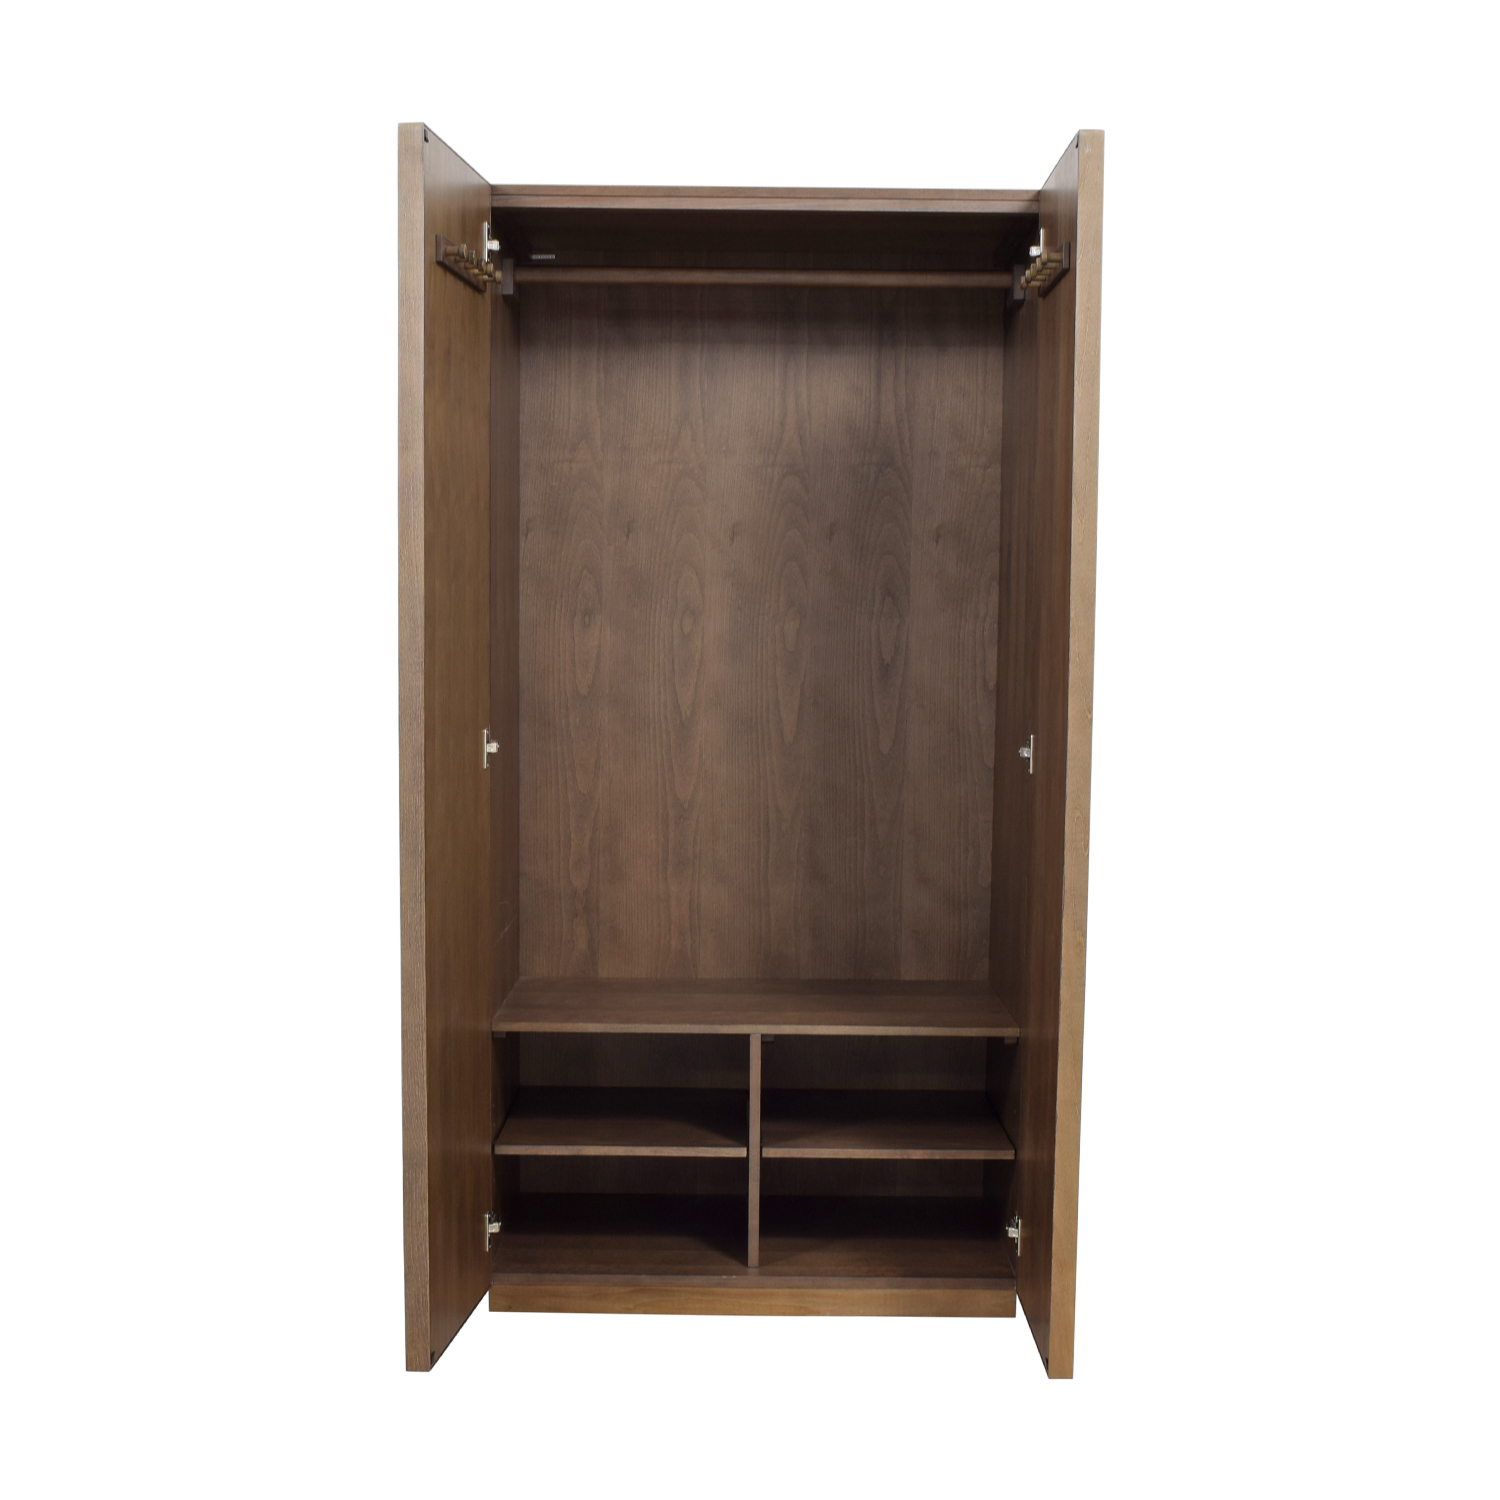 CB2 CB2 Mirrored Armoire with Shelves on sale